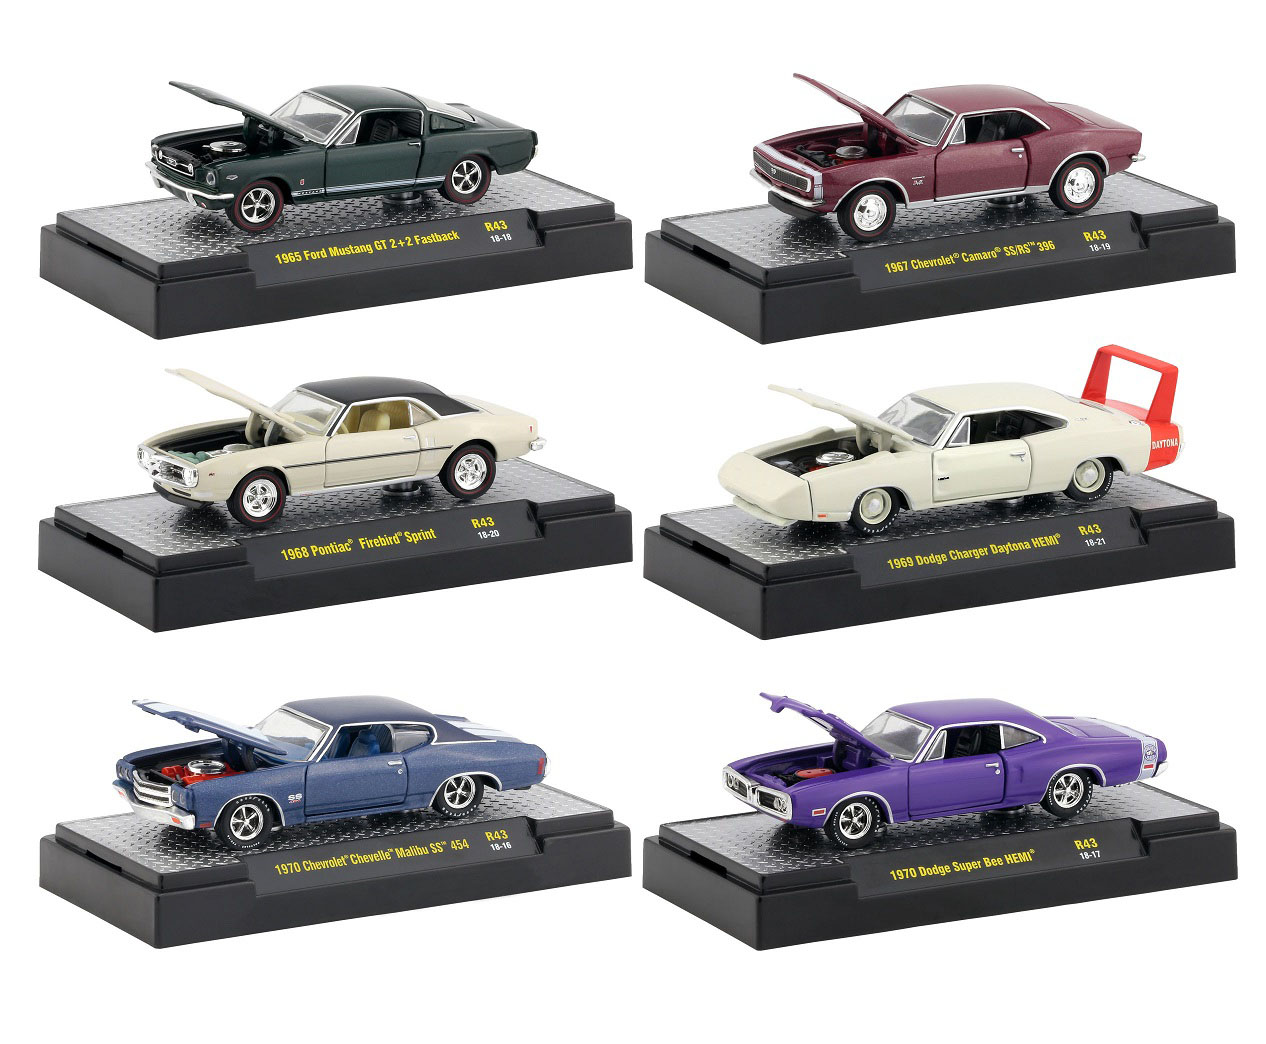 Detroit Muscle 6 Cars Set Release 43 IN DISPLAY CASES 1/64 Diecast Model Cars by M2 Machines